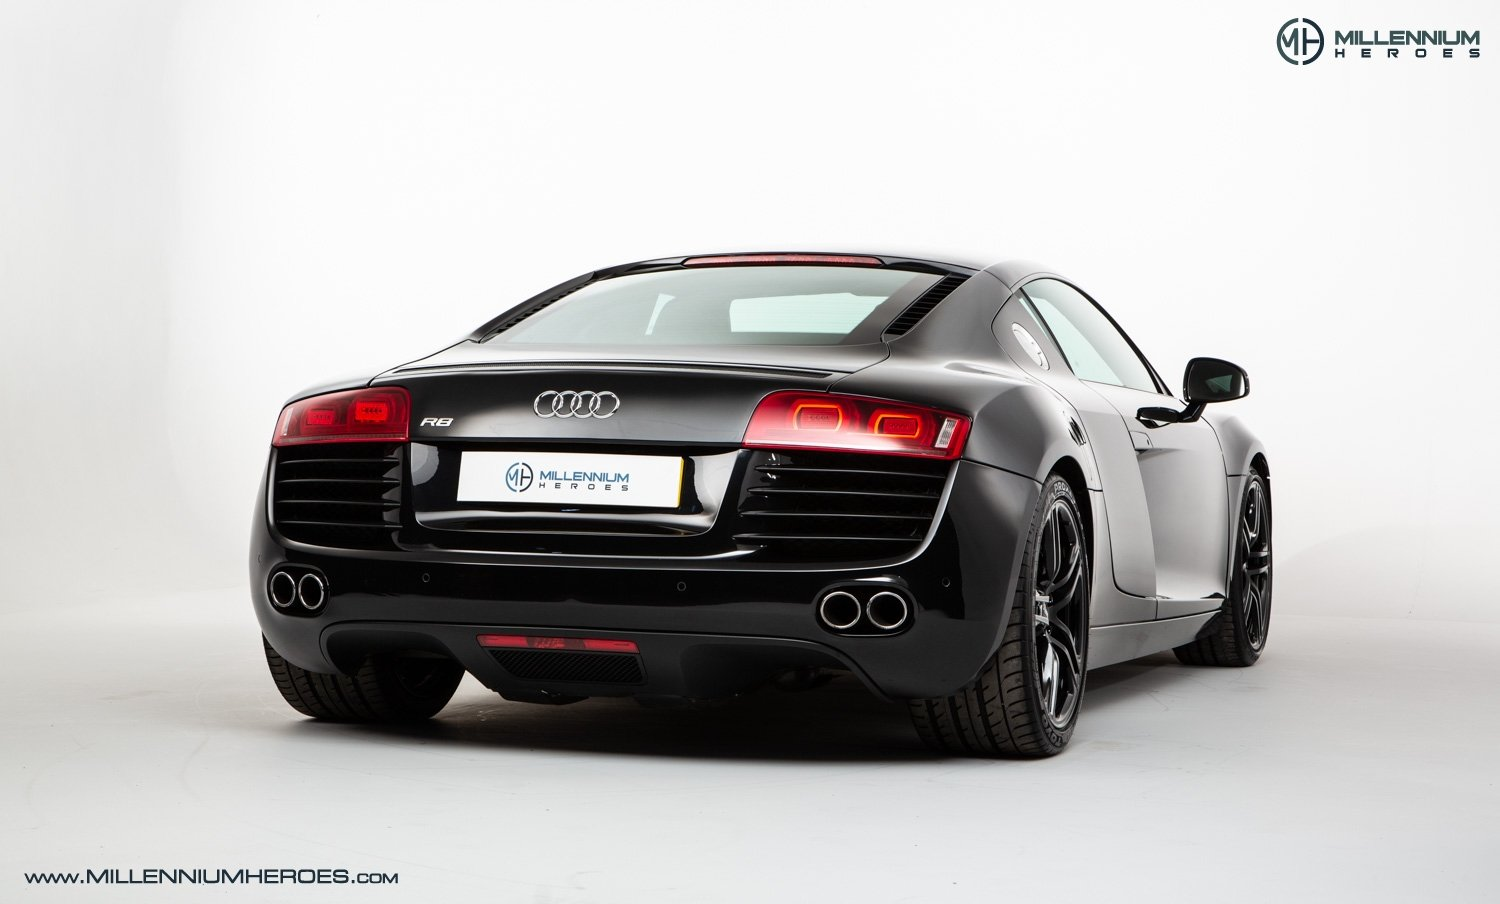 2008 AUDI R8 QUATTRO // 6 SPEED MANUAL // FULL AUDI SERVICE HISTO For Sale (picture 6 of 19)